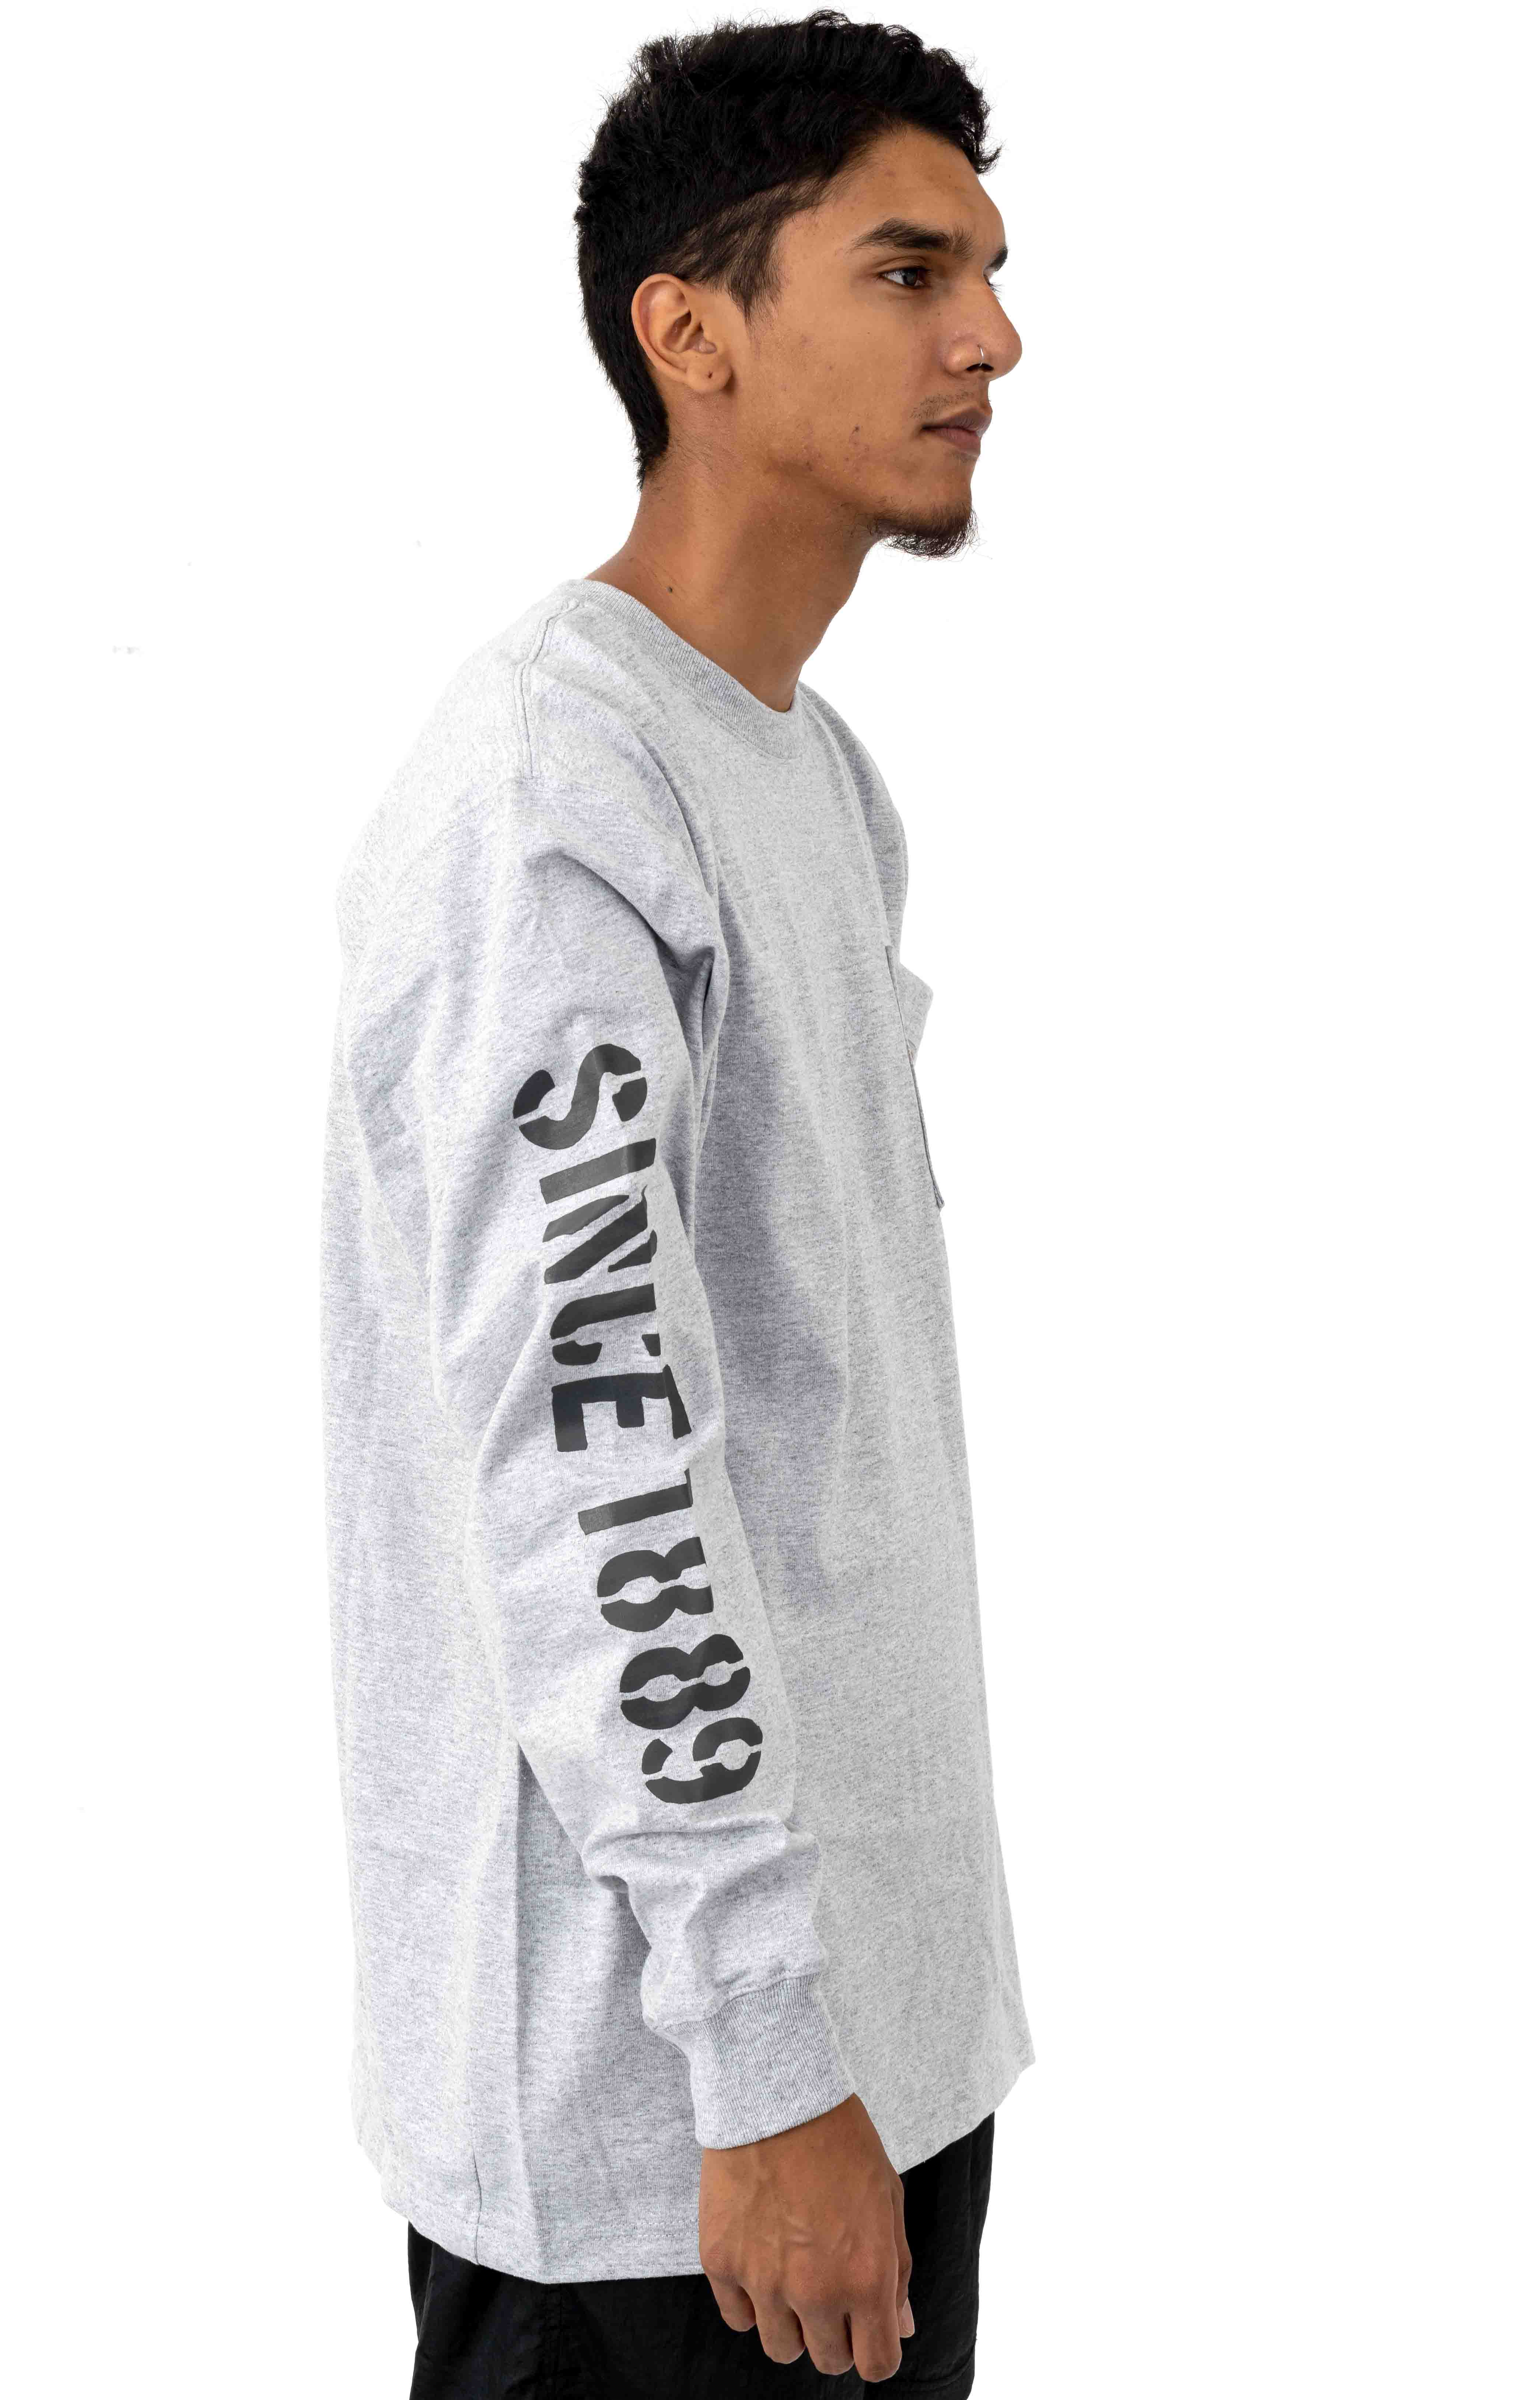 (103845) Workwear Double Sleeve Graphic L/S Pocket Shirt - Heather Grey 3